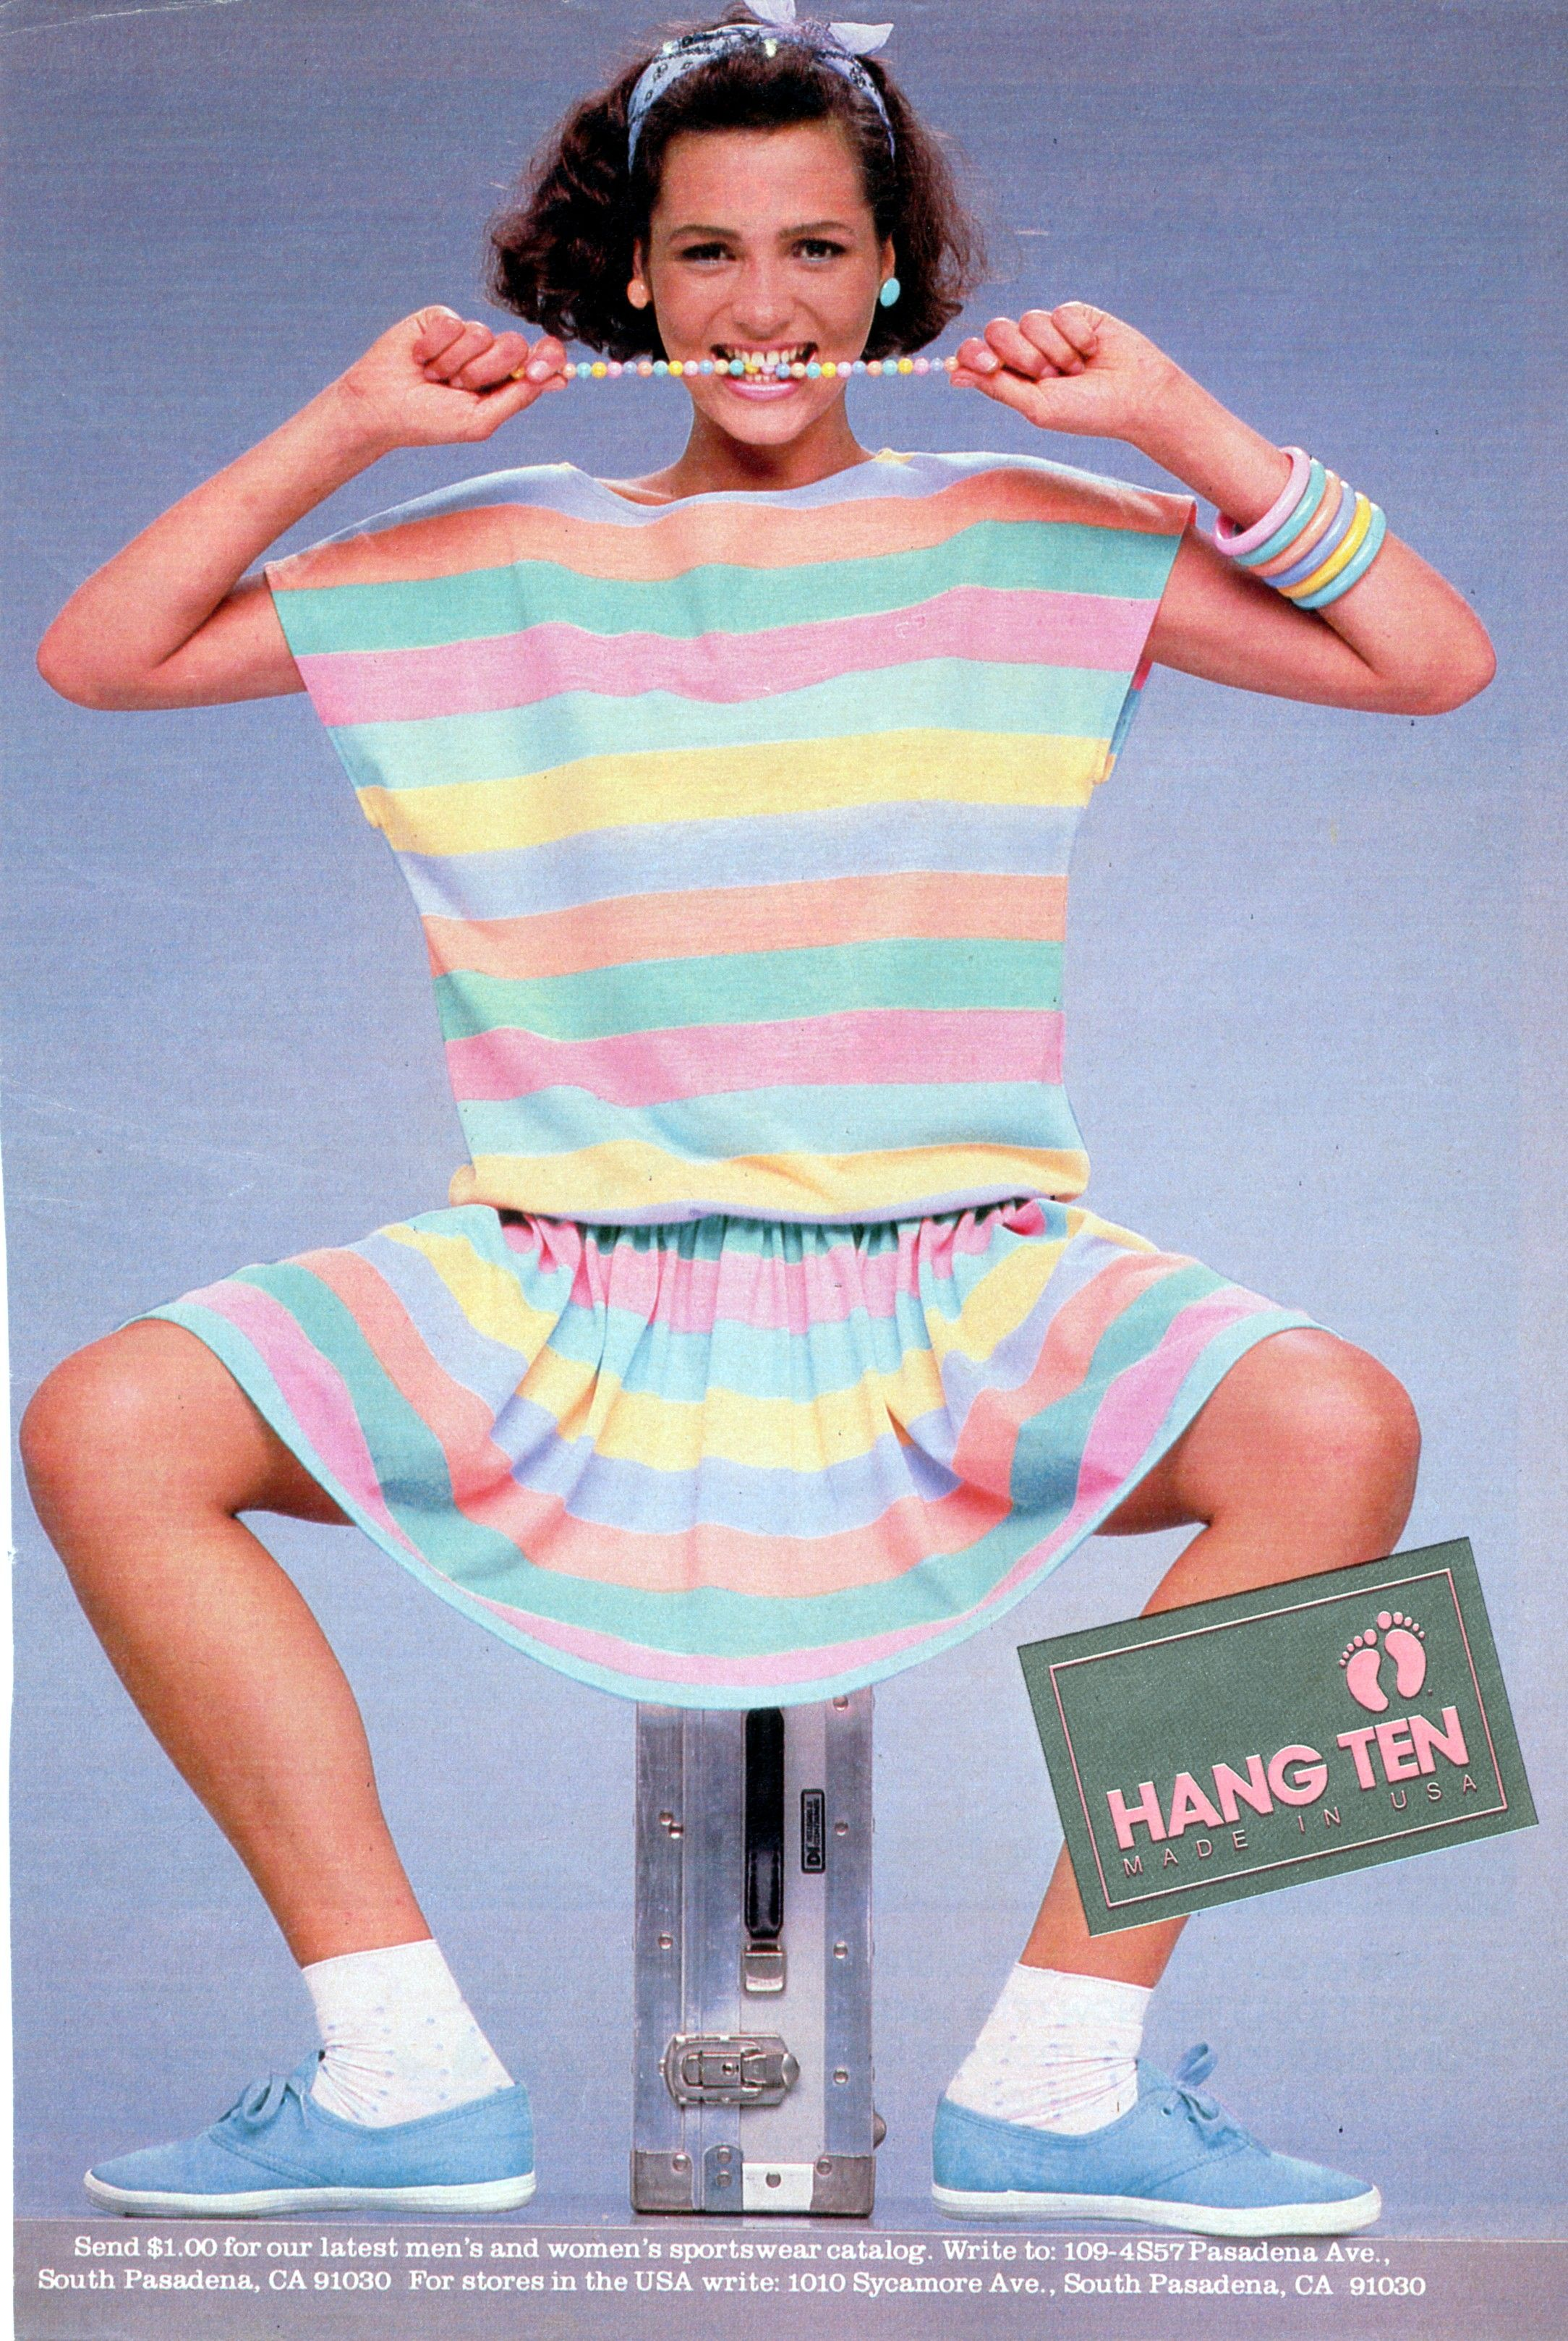 Hang Ten Pastel Dress - 1984 I remember this ad and how much I loved the multi-color